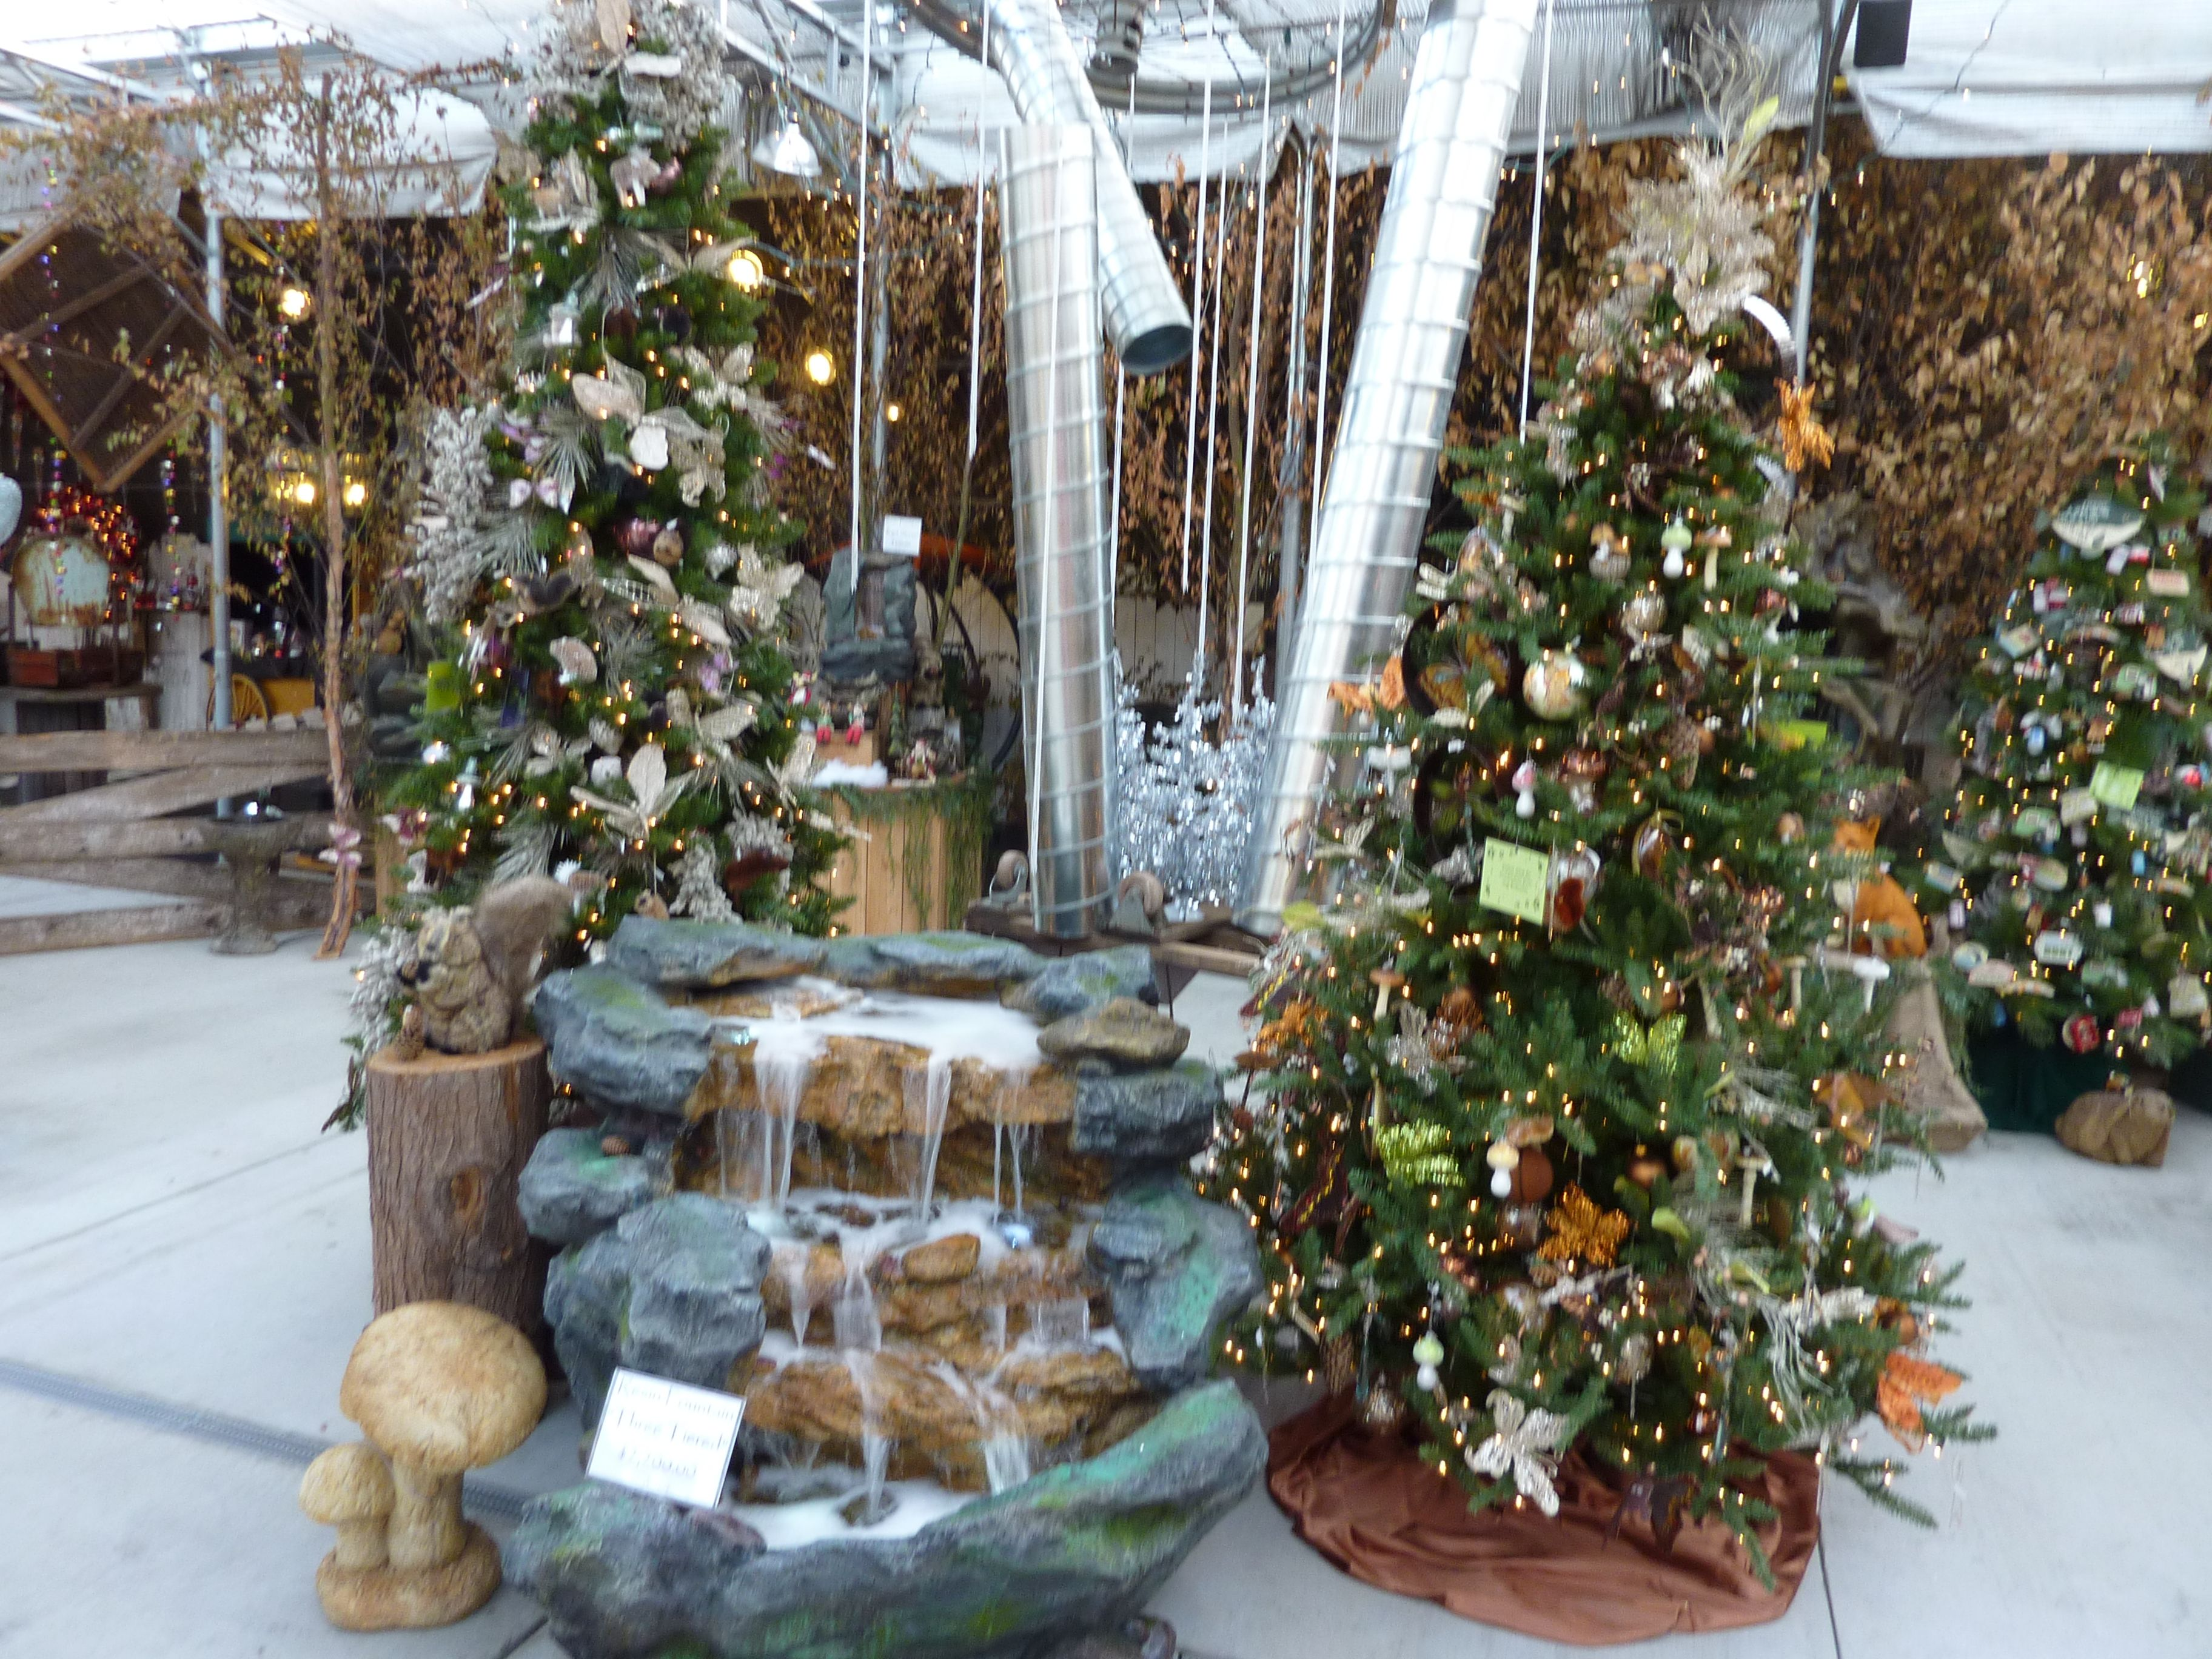 Outdoor garden themes with beautiful lighted resin rock fountains